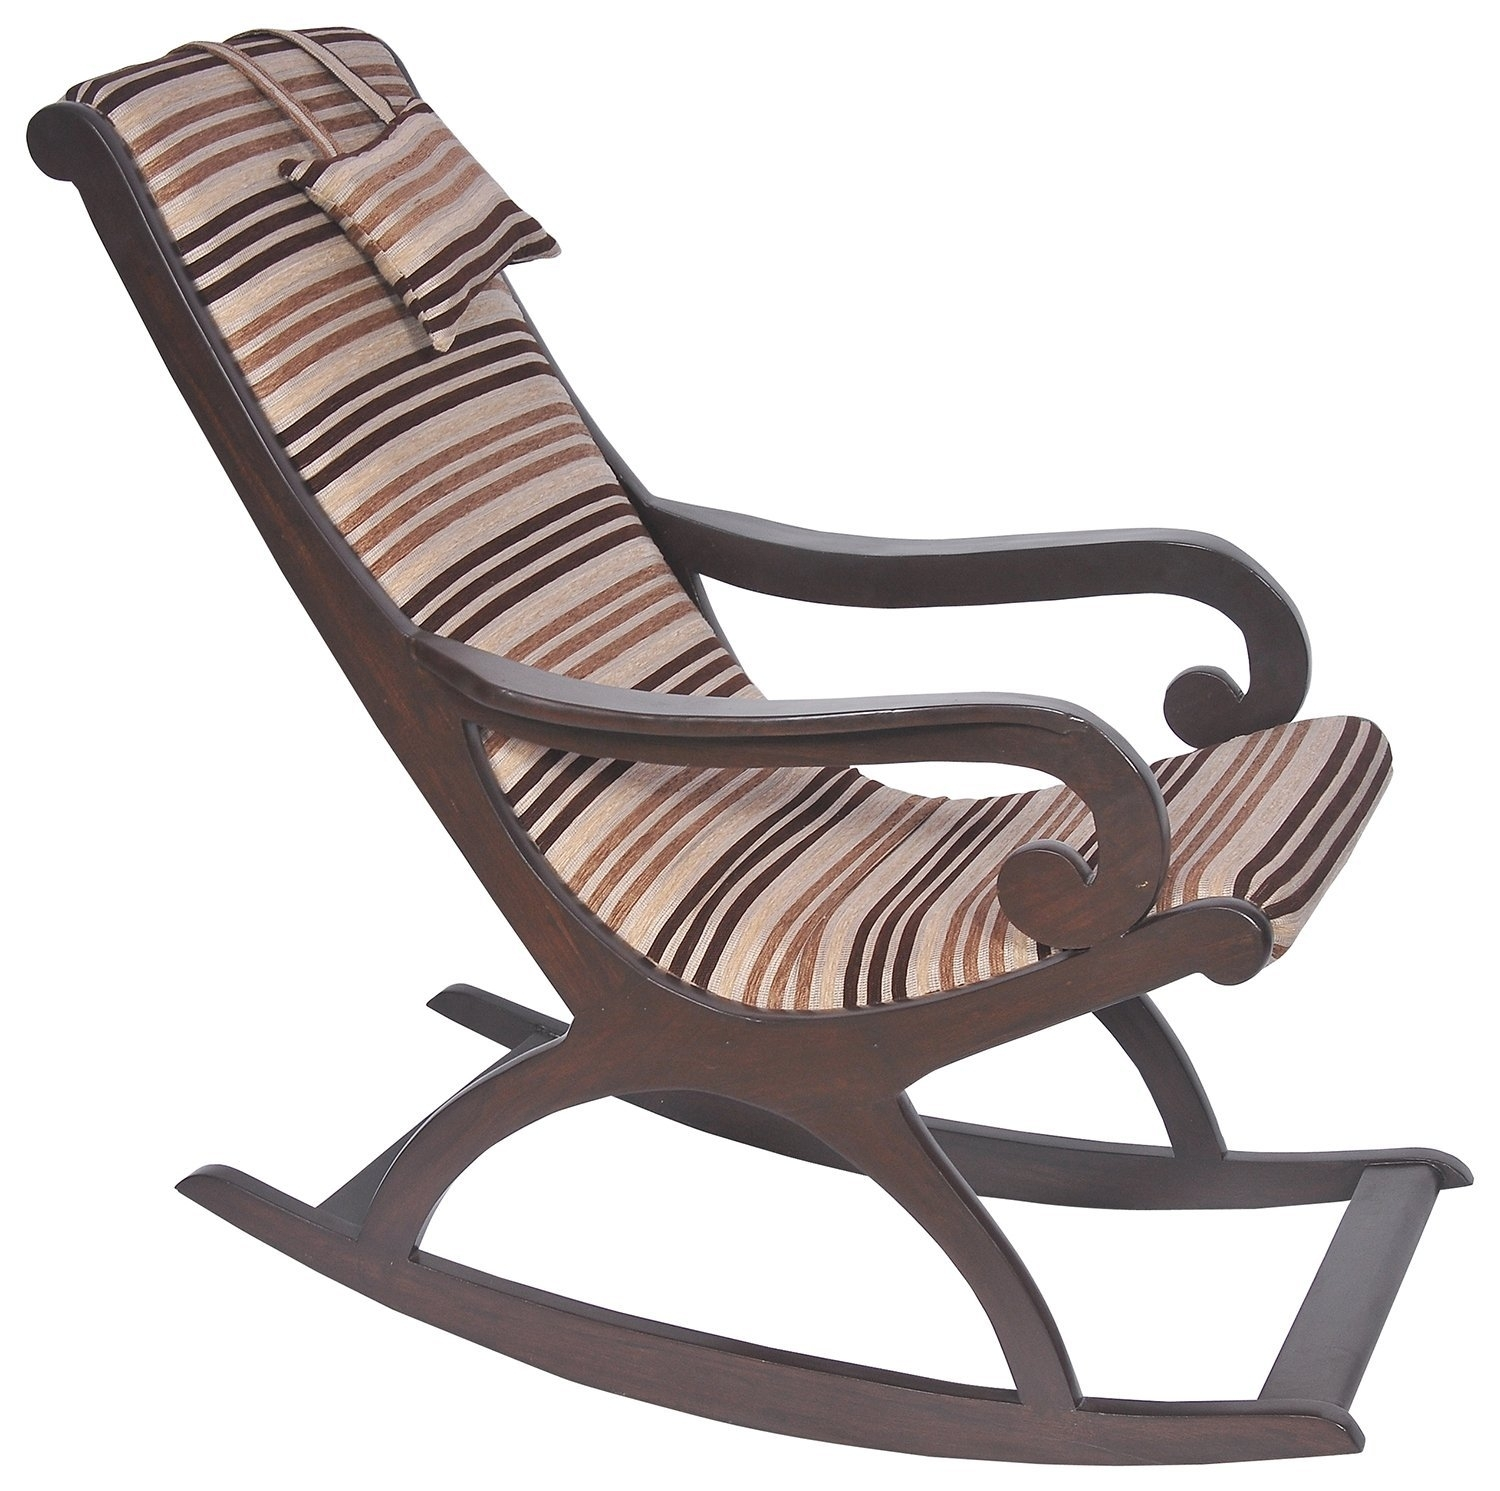 Chair | Kids Wooden Rocking Chair Small Adult Rocking Chair Indoor With Regard To Rocking Chairs For Adults (#5 of 15)